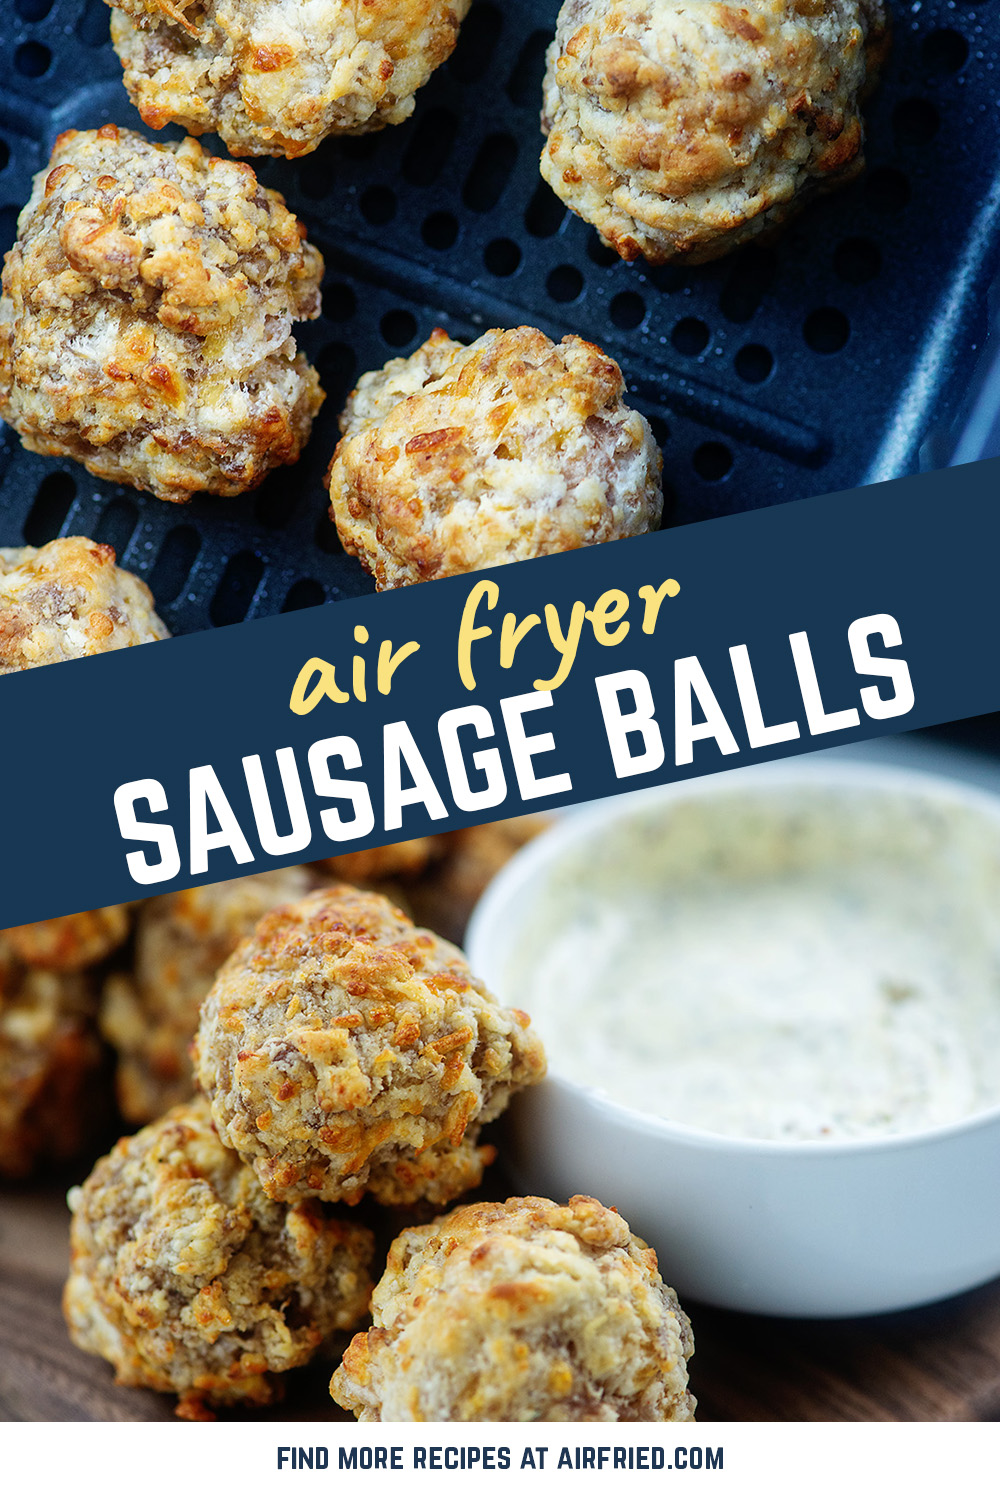 This appetizer is perfect for serving my family!  They are cream cheese sausage balls served with a dill mustard dip!  #airfryer #recipes #sausage